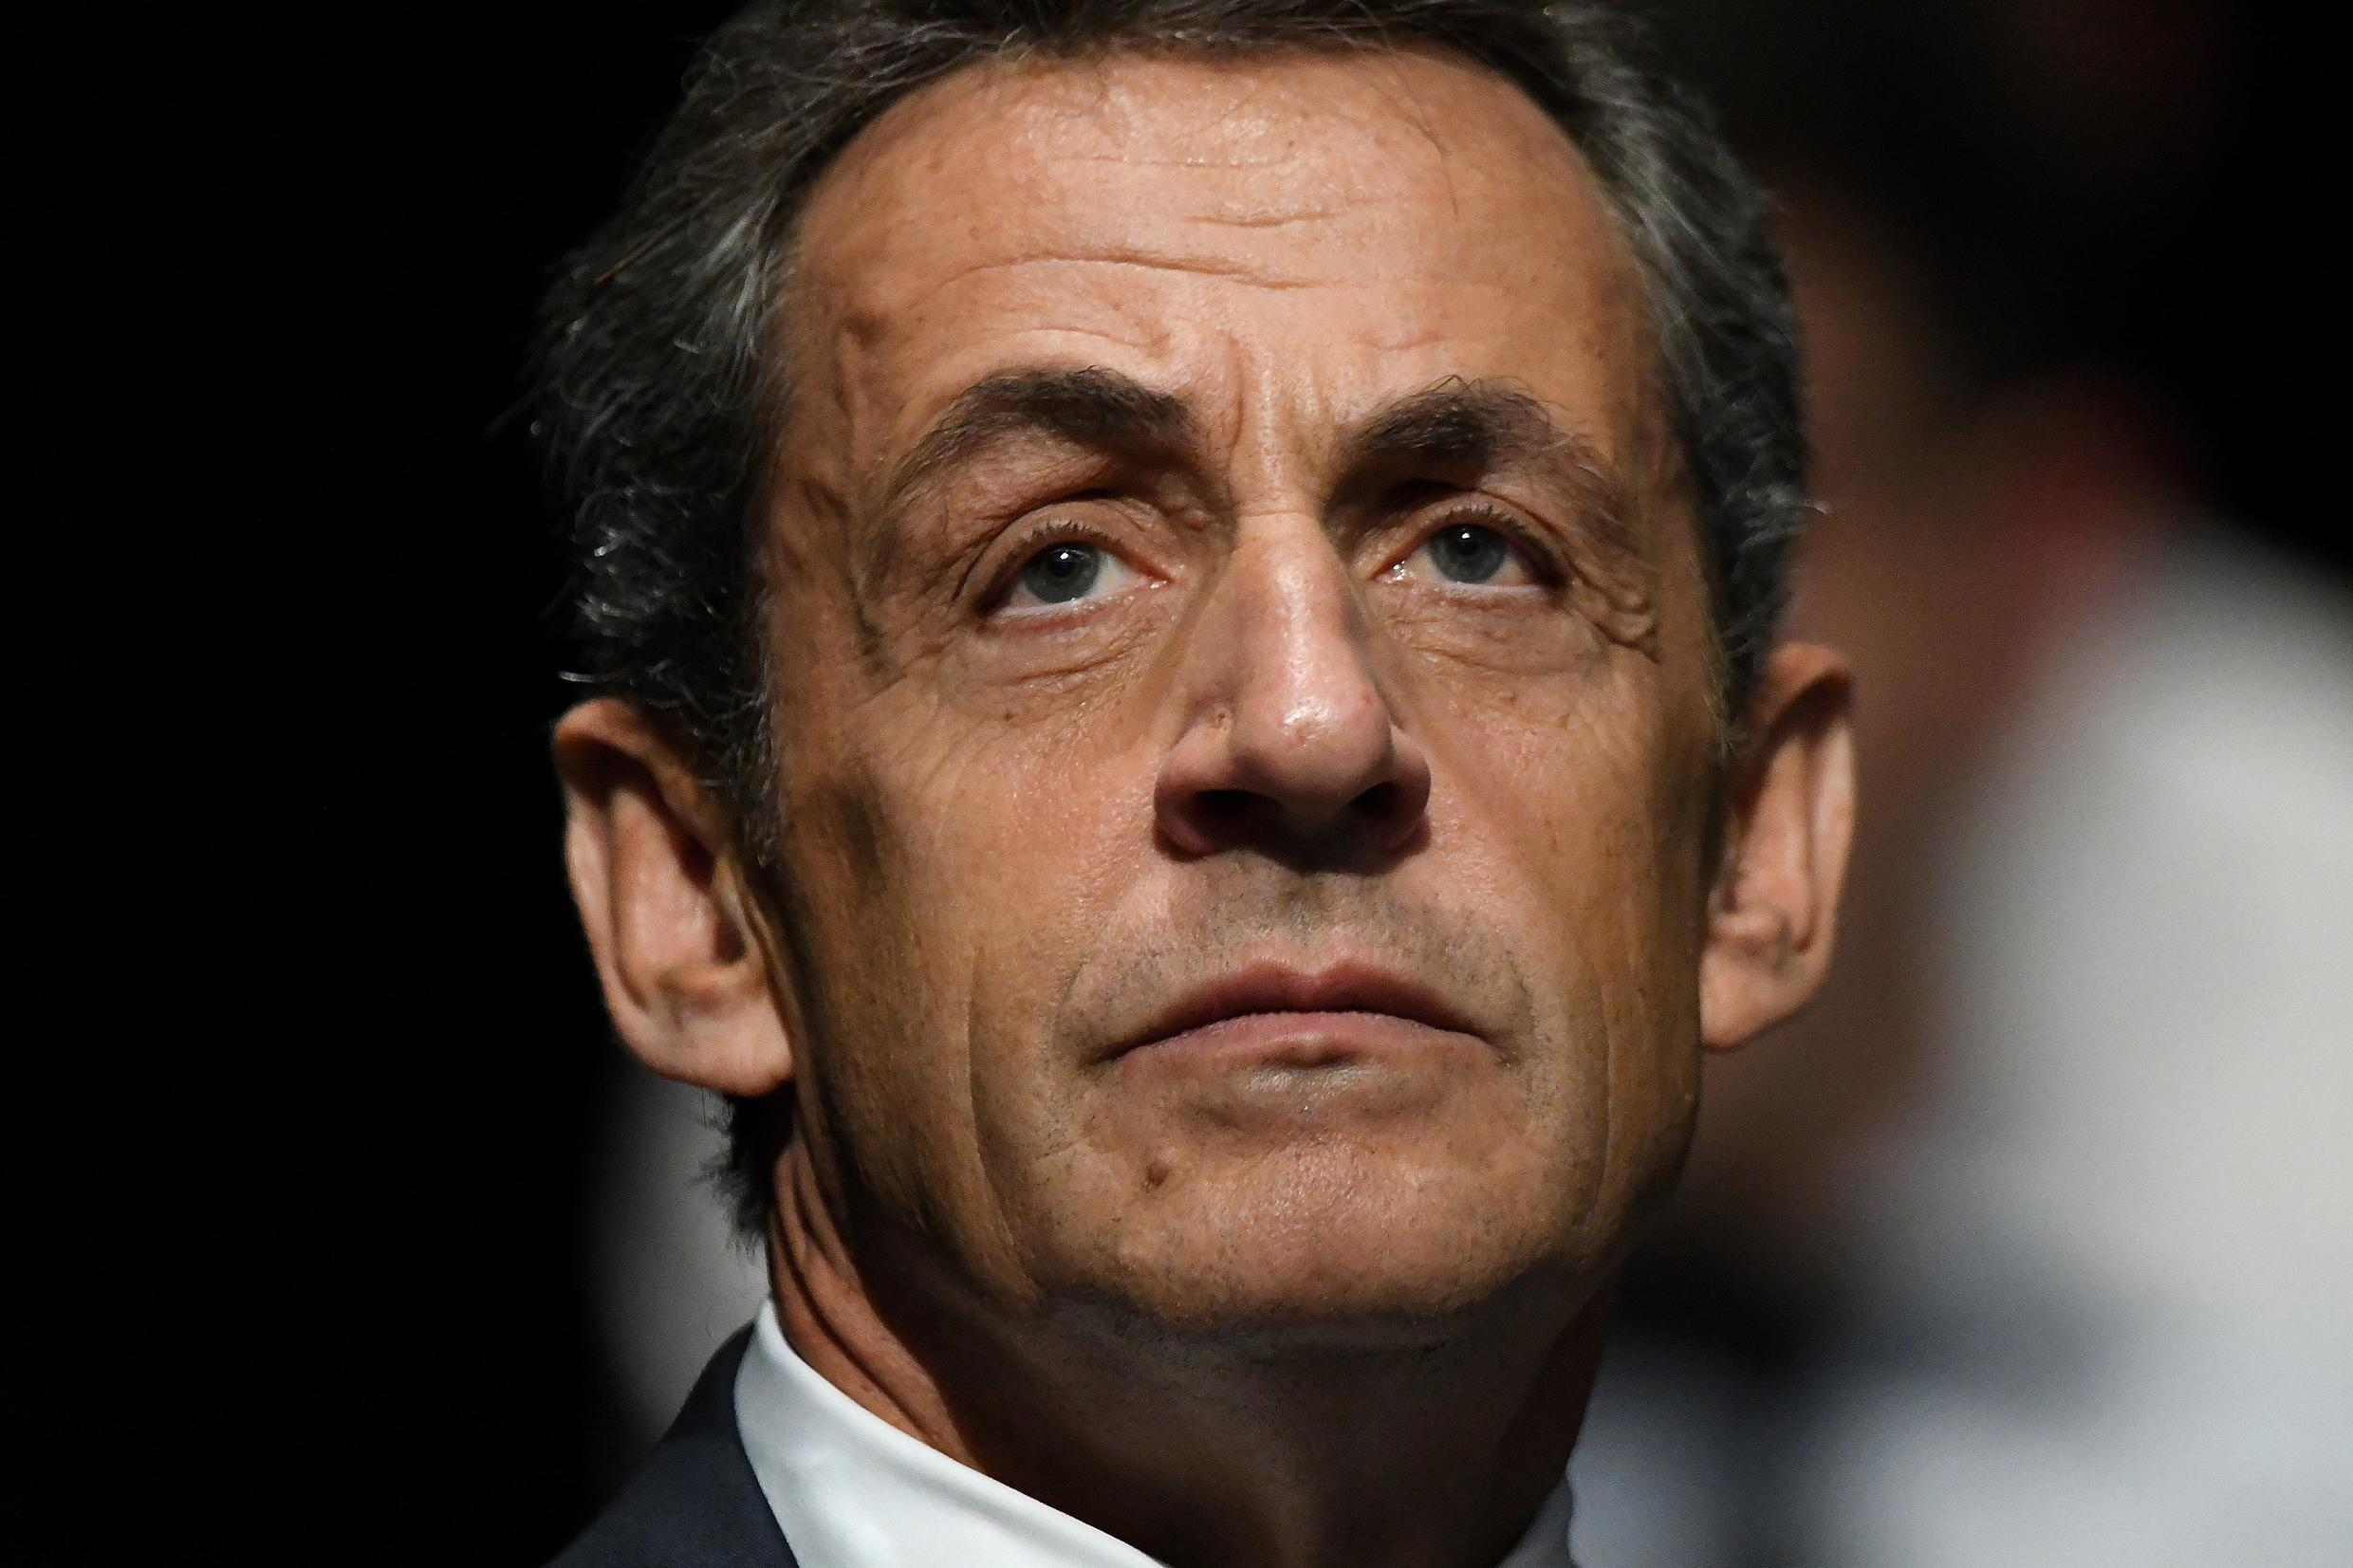 Nicolas Sarkozy, who was France's president from 2007 until 2012, has been dogged by legal cases since leaving office